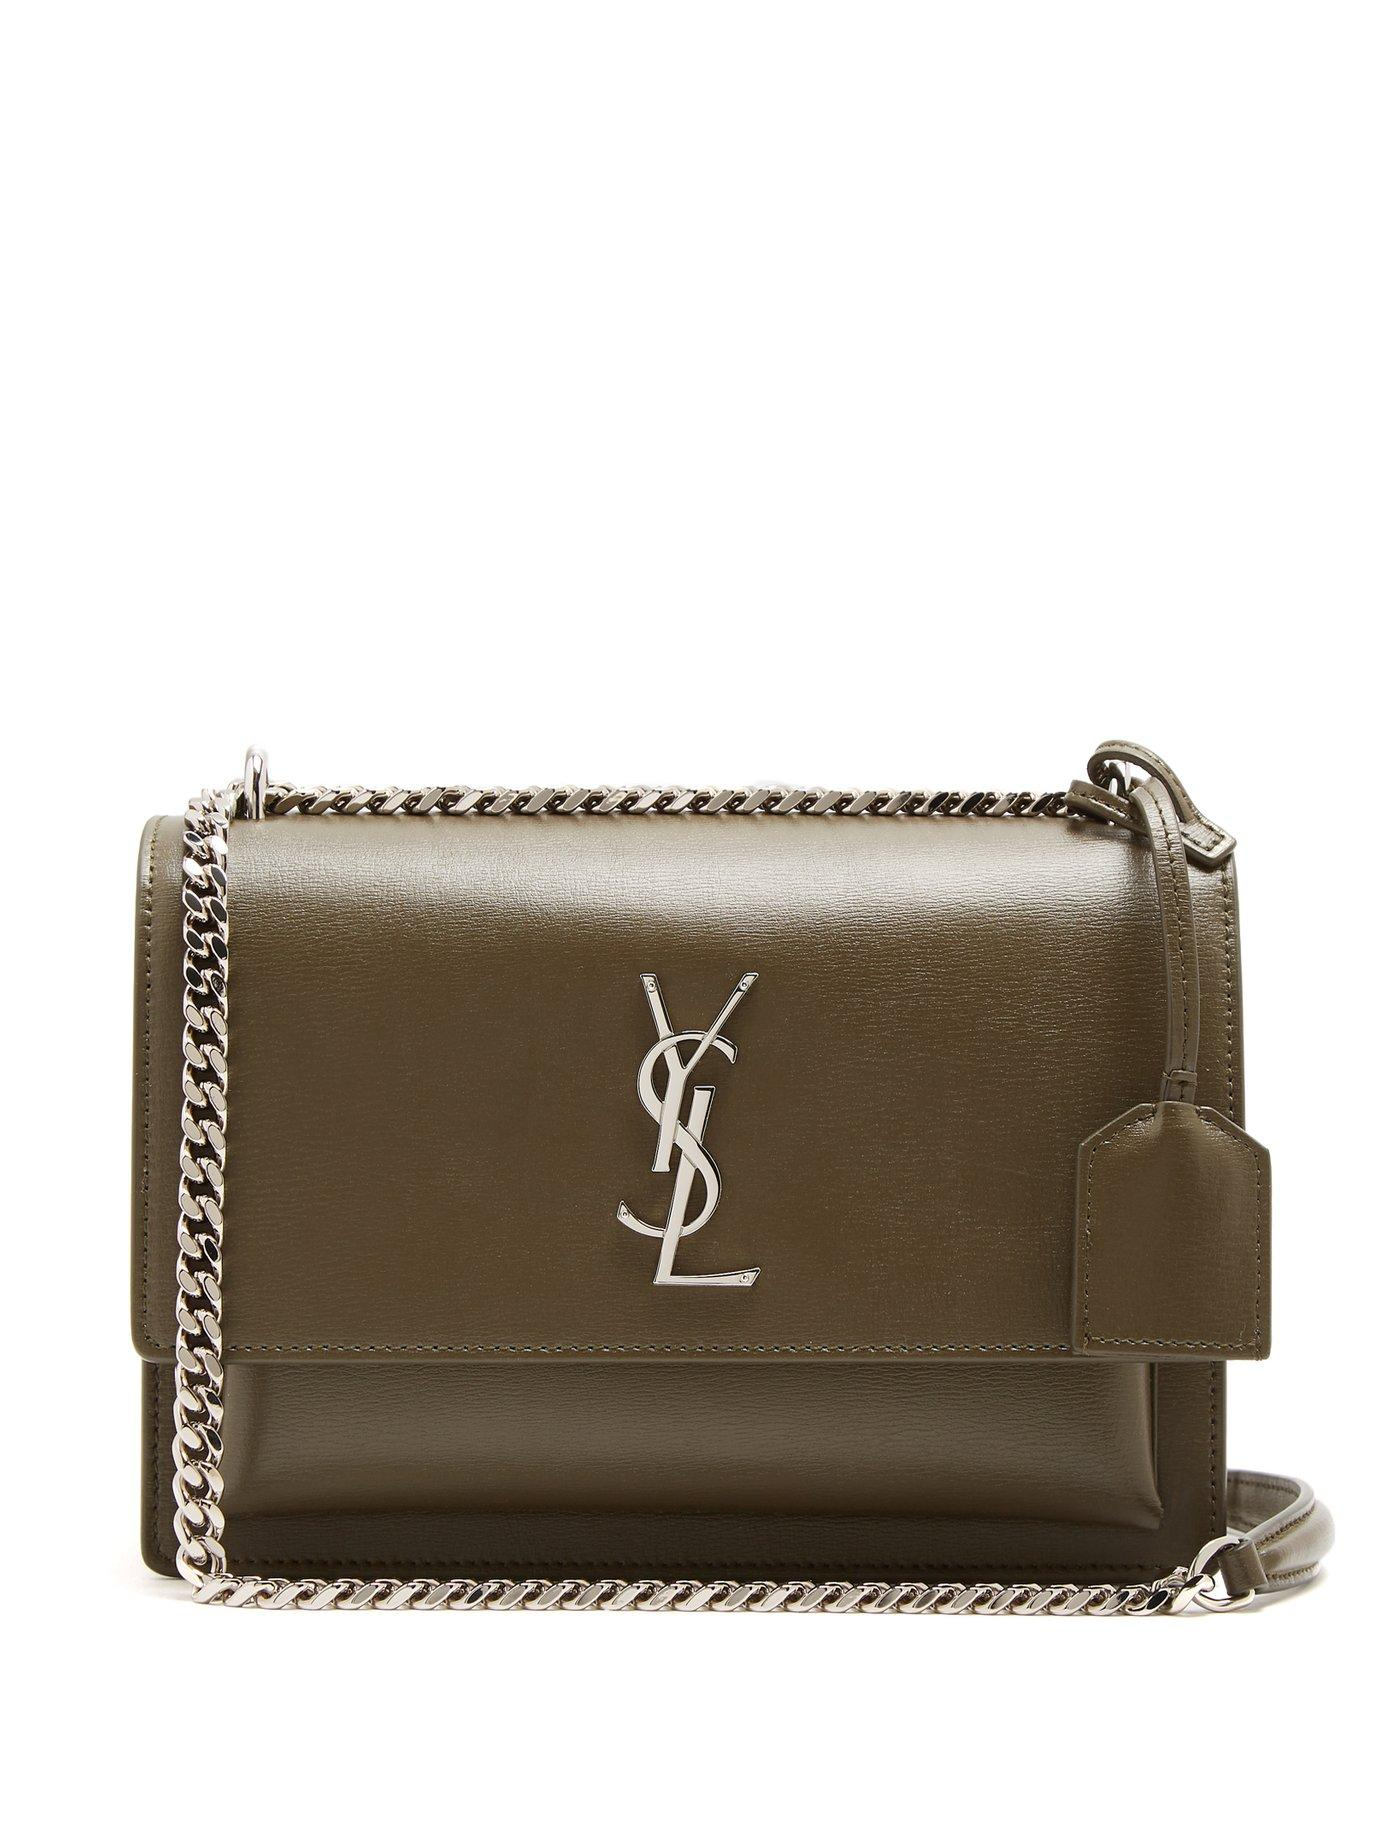 Lyst - Saint Laurent Sunset Medium Leather Cross Body Bag in Natural 25770e7a1ce20